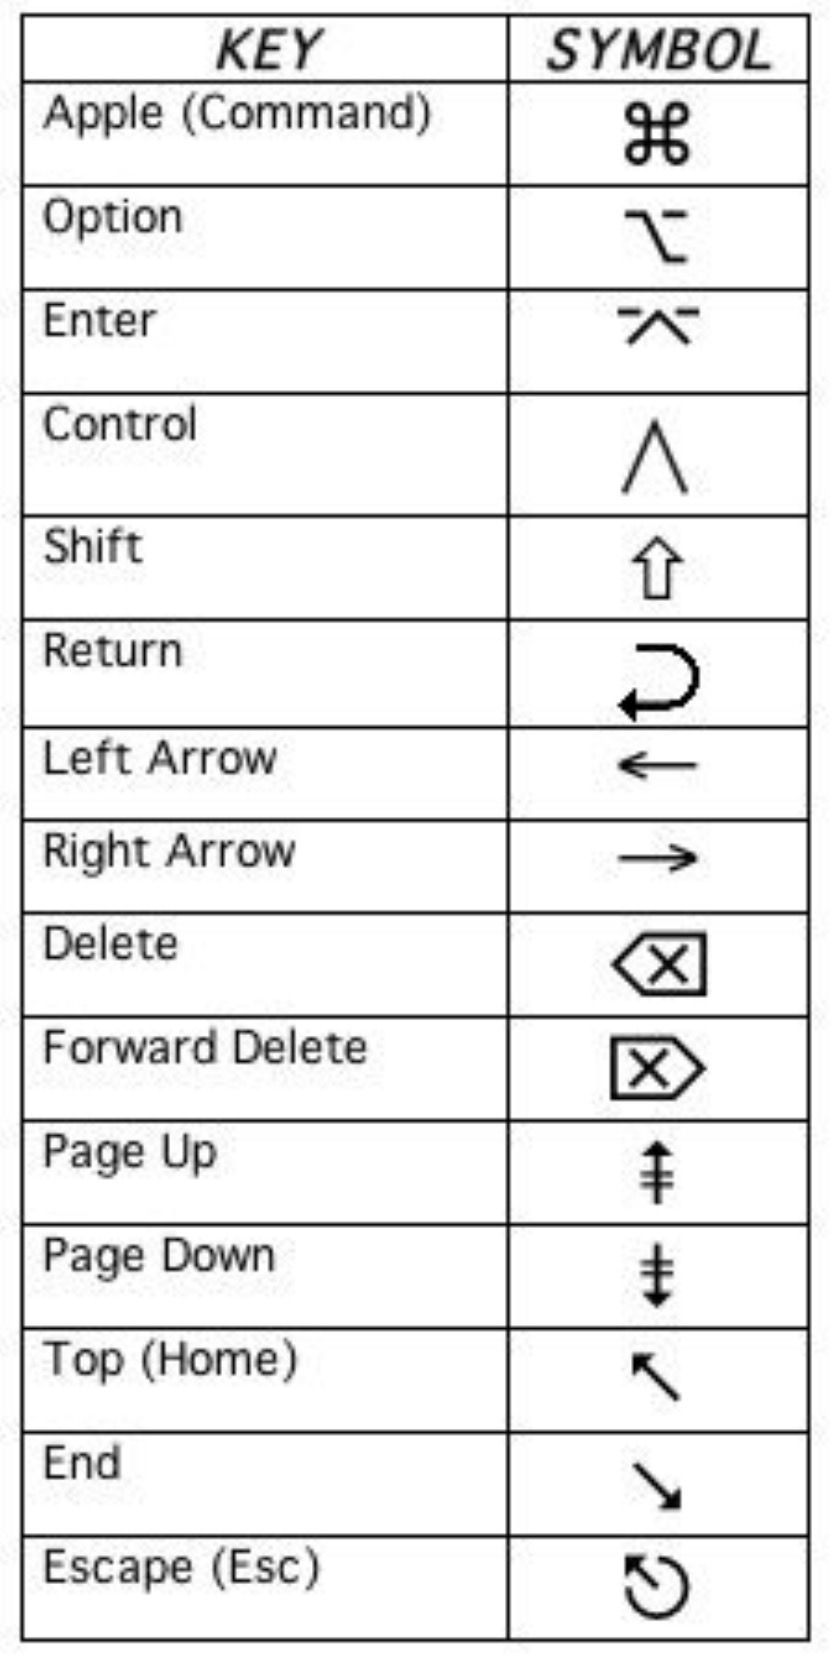 Pin by pinative on good to know pinterest macbook life hacks keyboarding symbolscomputing with bifocals a near complete list of mac keyboard shortcuts biocorpaavc Images